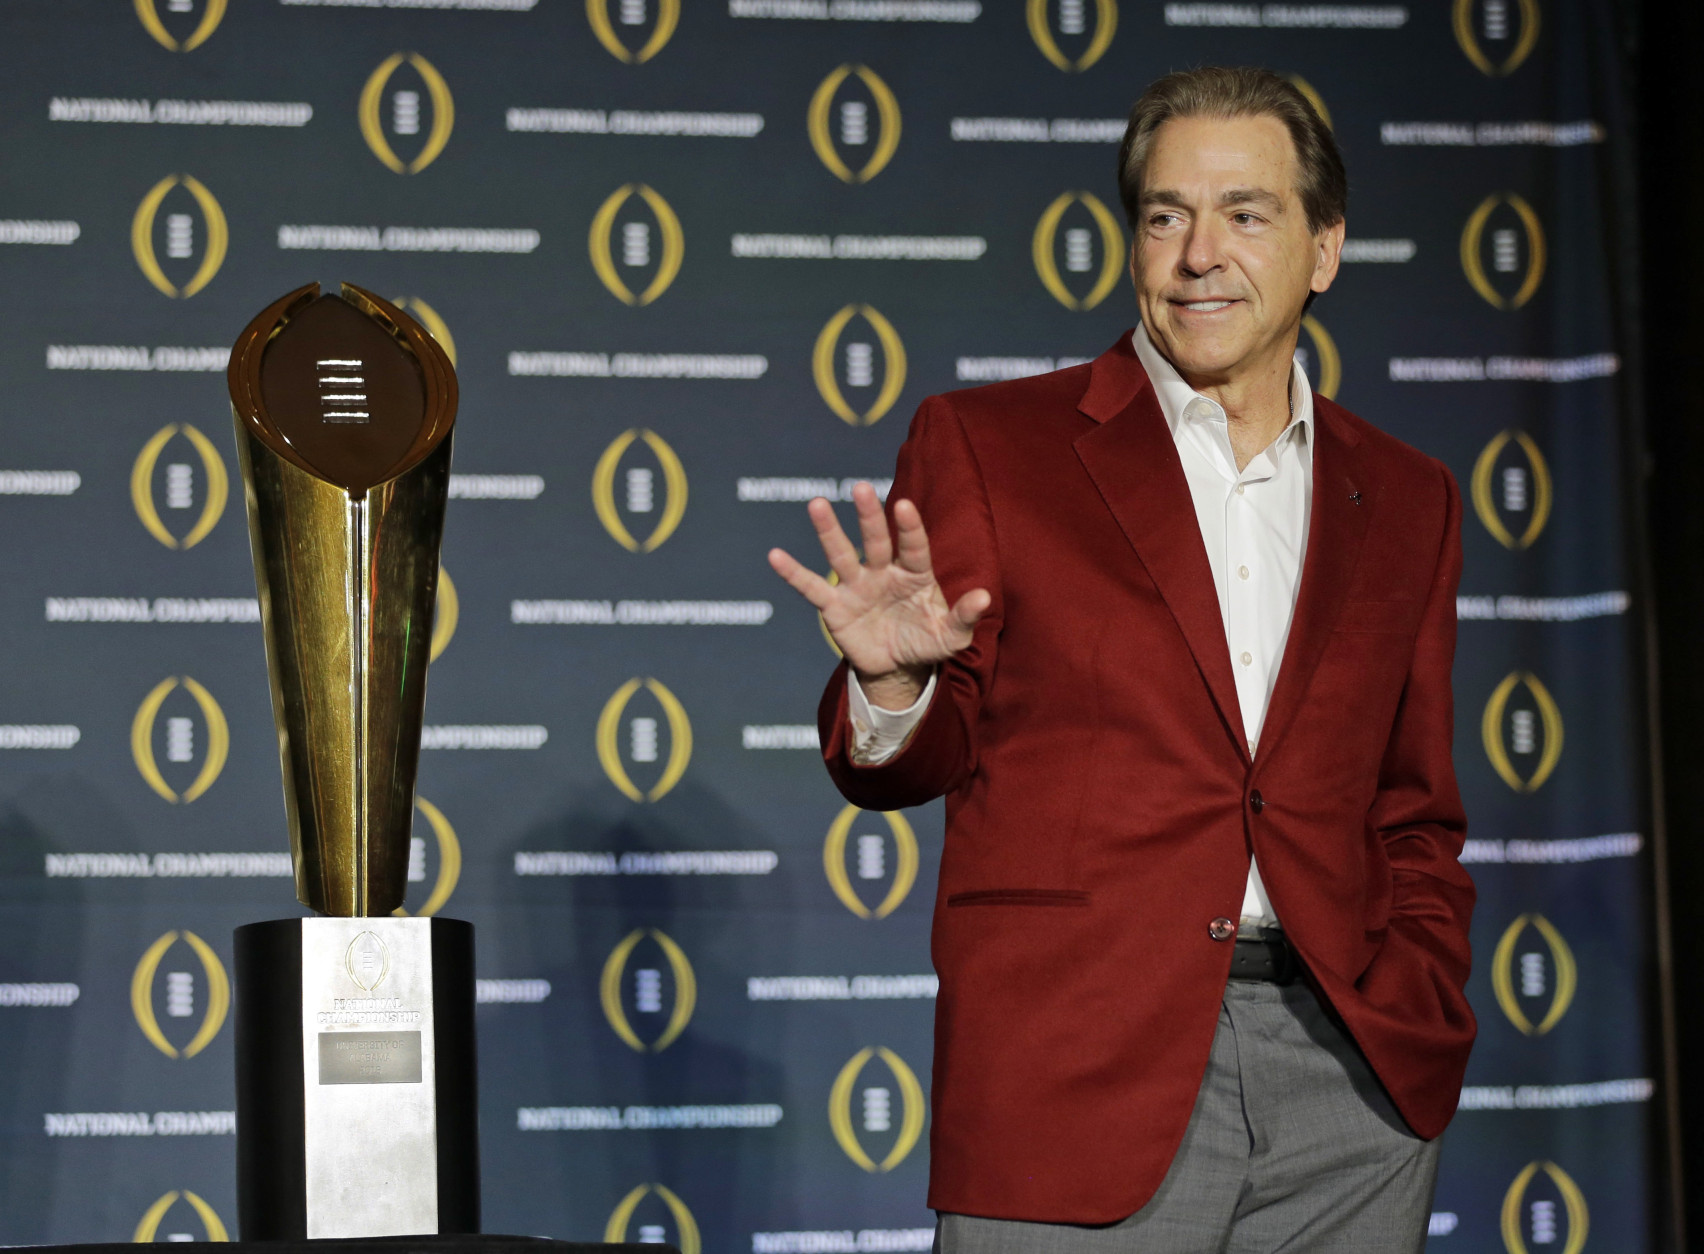 FILE - In this Jan. 12, 2016, file photo, Alabama head coach Nick Saban poses with the championship trophy during a news conference for the NCAA college football playoff championship in Scottsdale, Ariz.  Saban is one national title away from matching Bear Bryant's record and, with his 65th birthday coming up on Halloween, shows no signs of slowing down. (AP Photo/David J. Phillip, File)